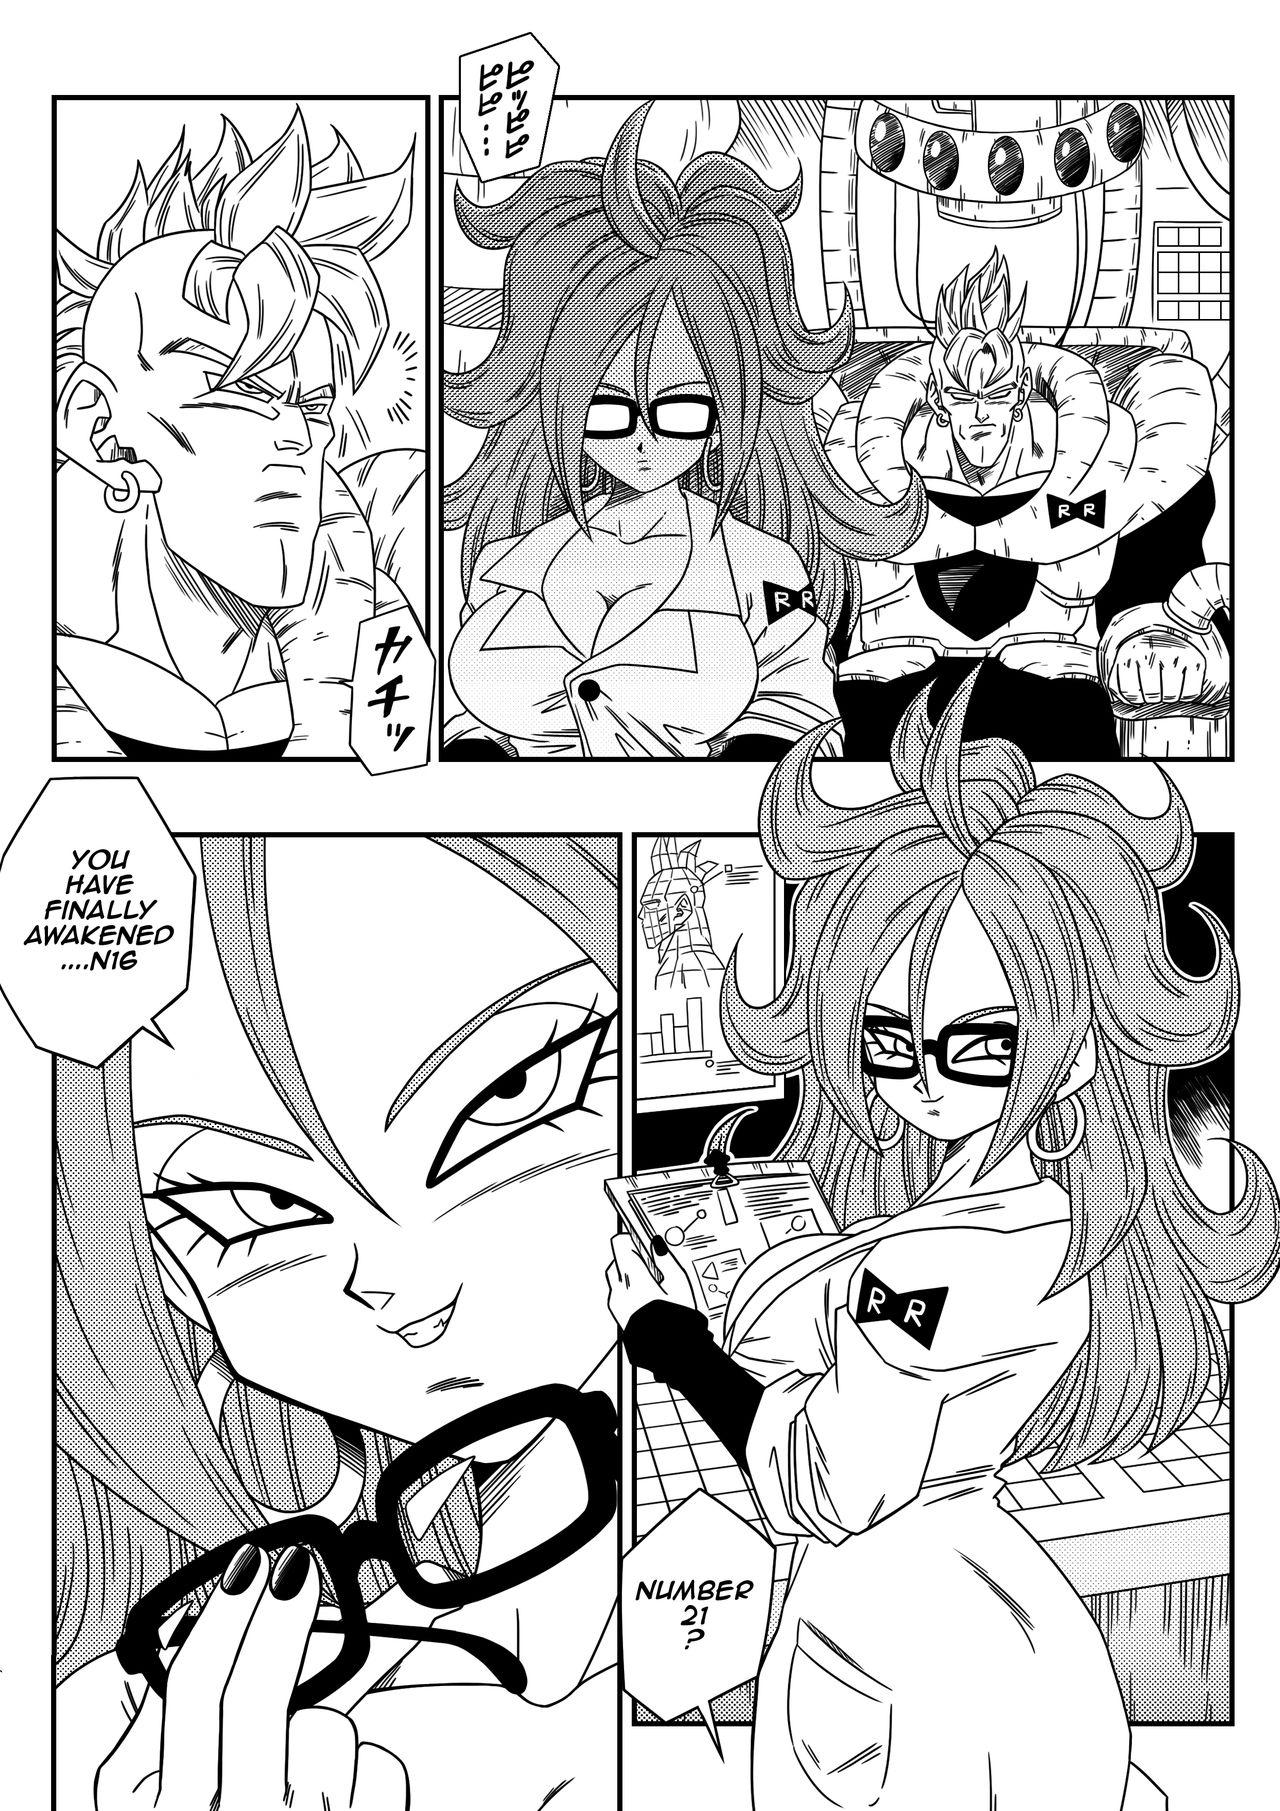 Kyonyuu Android Sekai Seiha o Netsubou!! Android 21 Shutsugen!!   Busty Android Wants to Dominate the World! 3